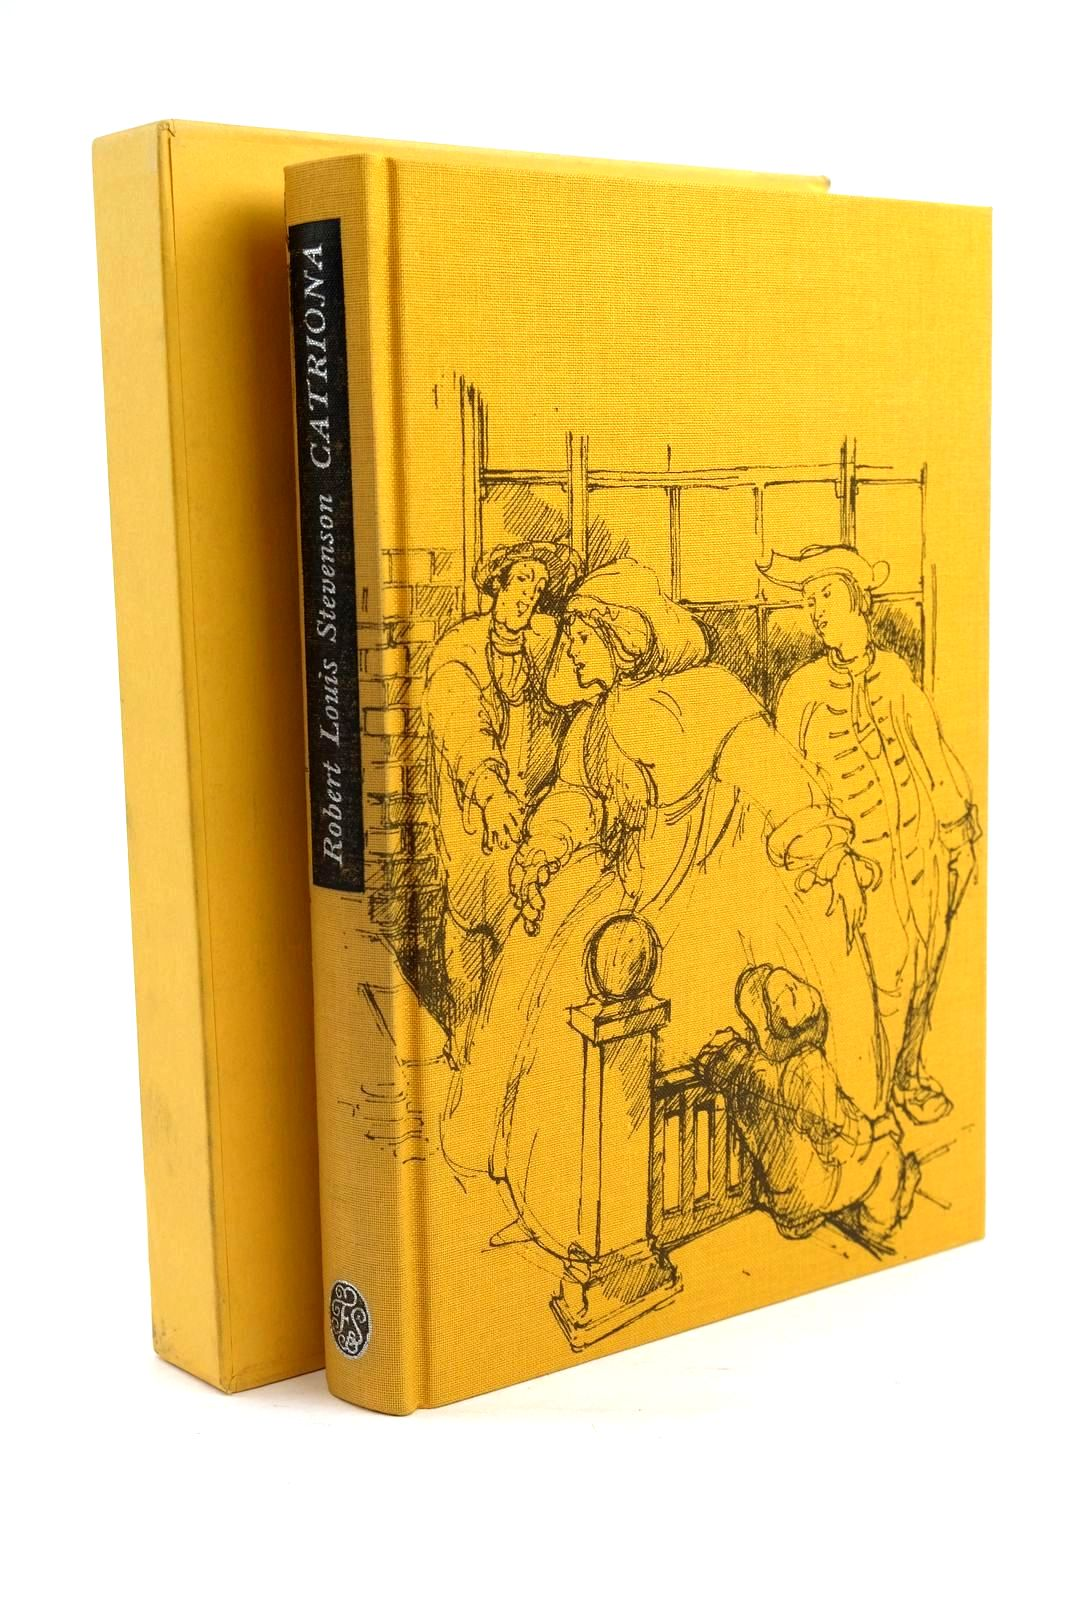 Photo of CATRIONA written by Stevenson, Robert Louis Delaney, Frank illustrated by Newnham, Annie published by Folio Society (STOCK CODE: 1319880)  for sale by Stella & Rose's Books